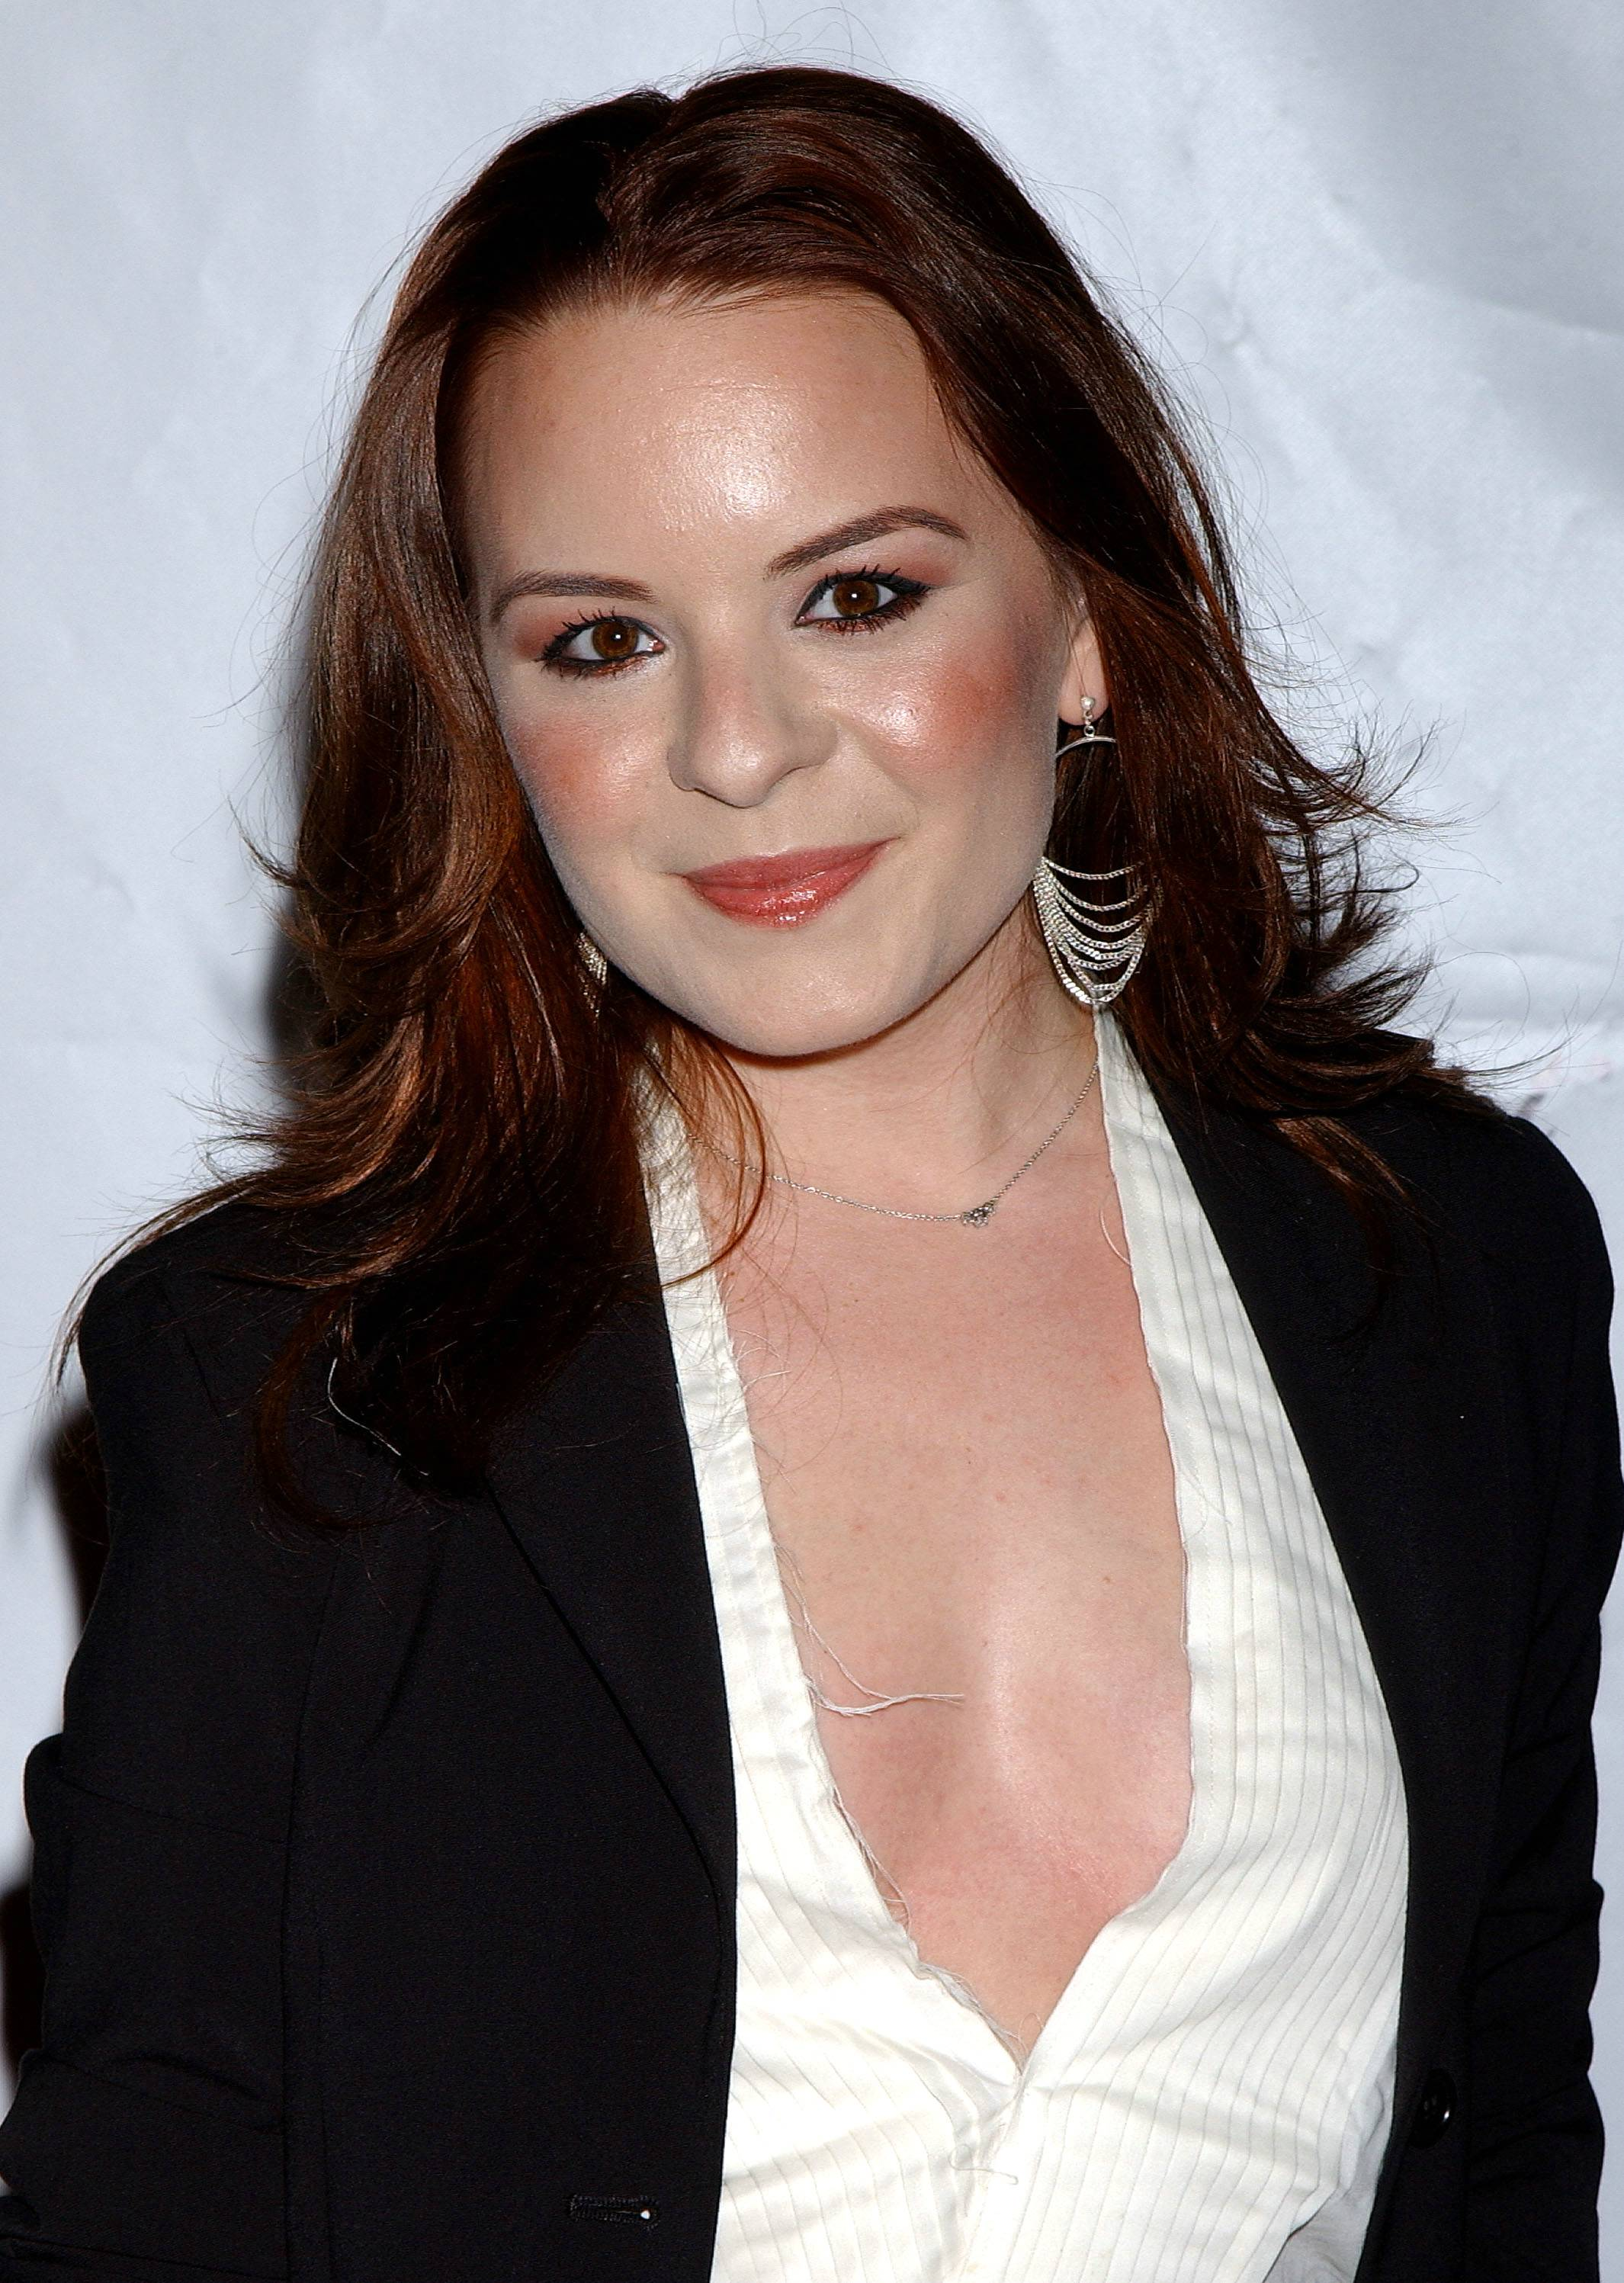 jenna von oy photo: